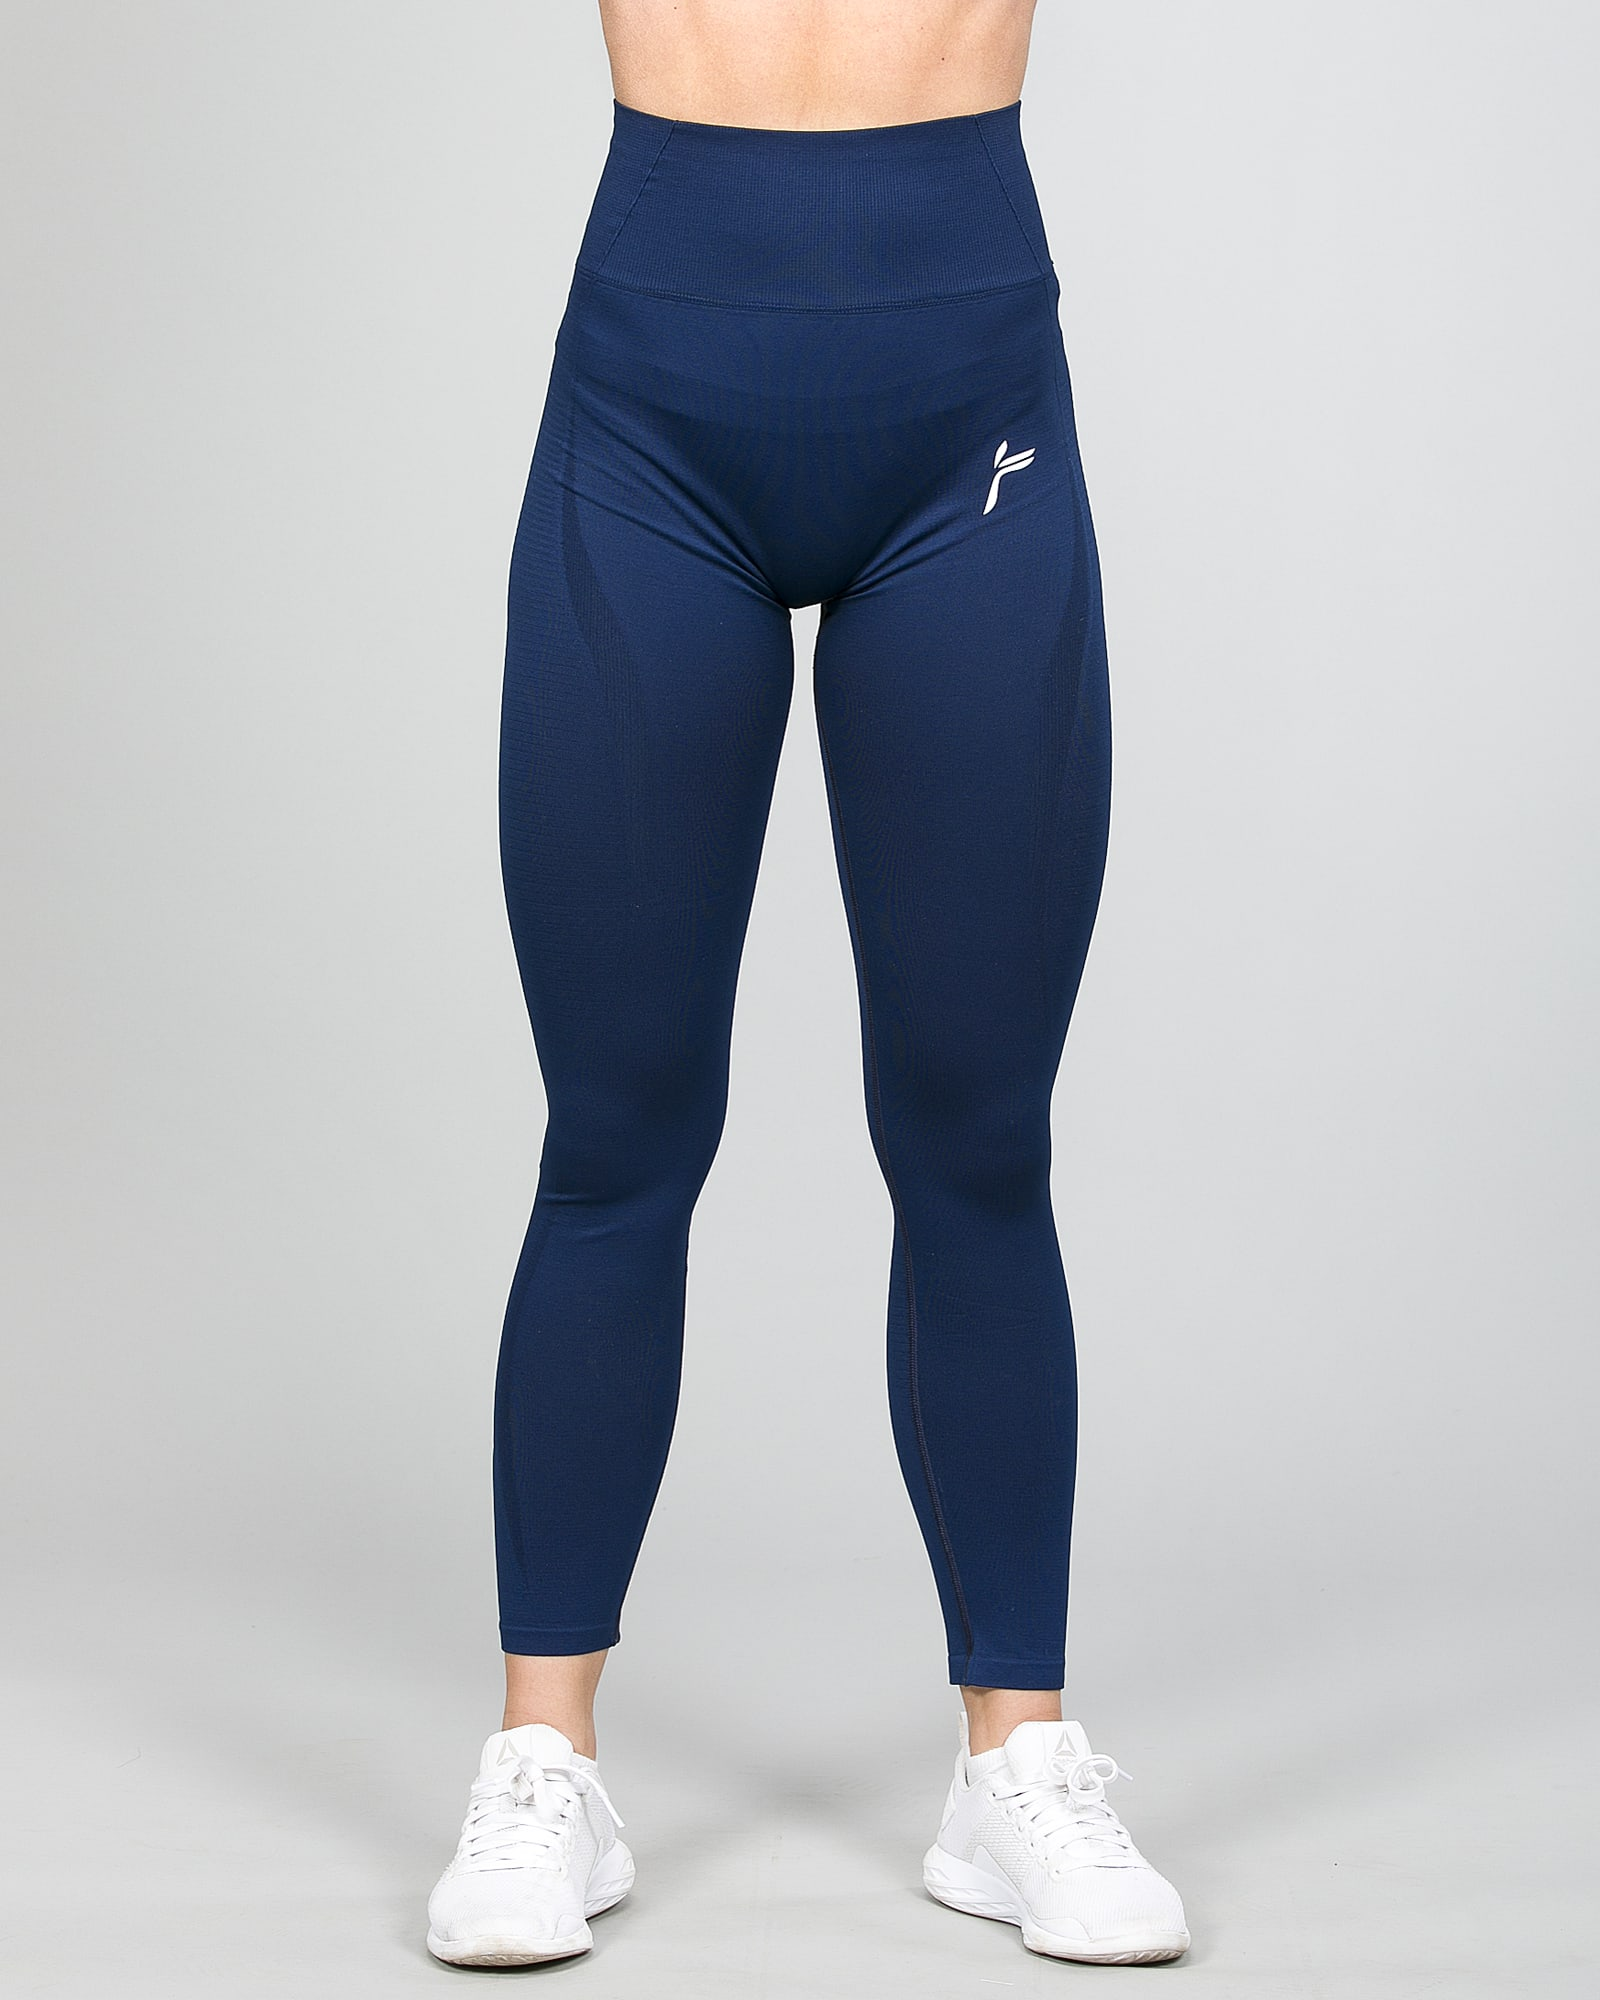 Famme Vortex Legging - Navy Blue vhwl-nv d